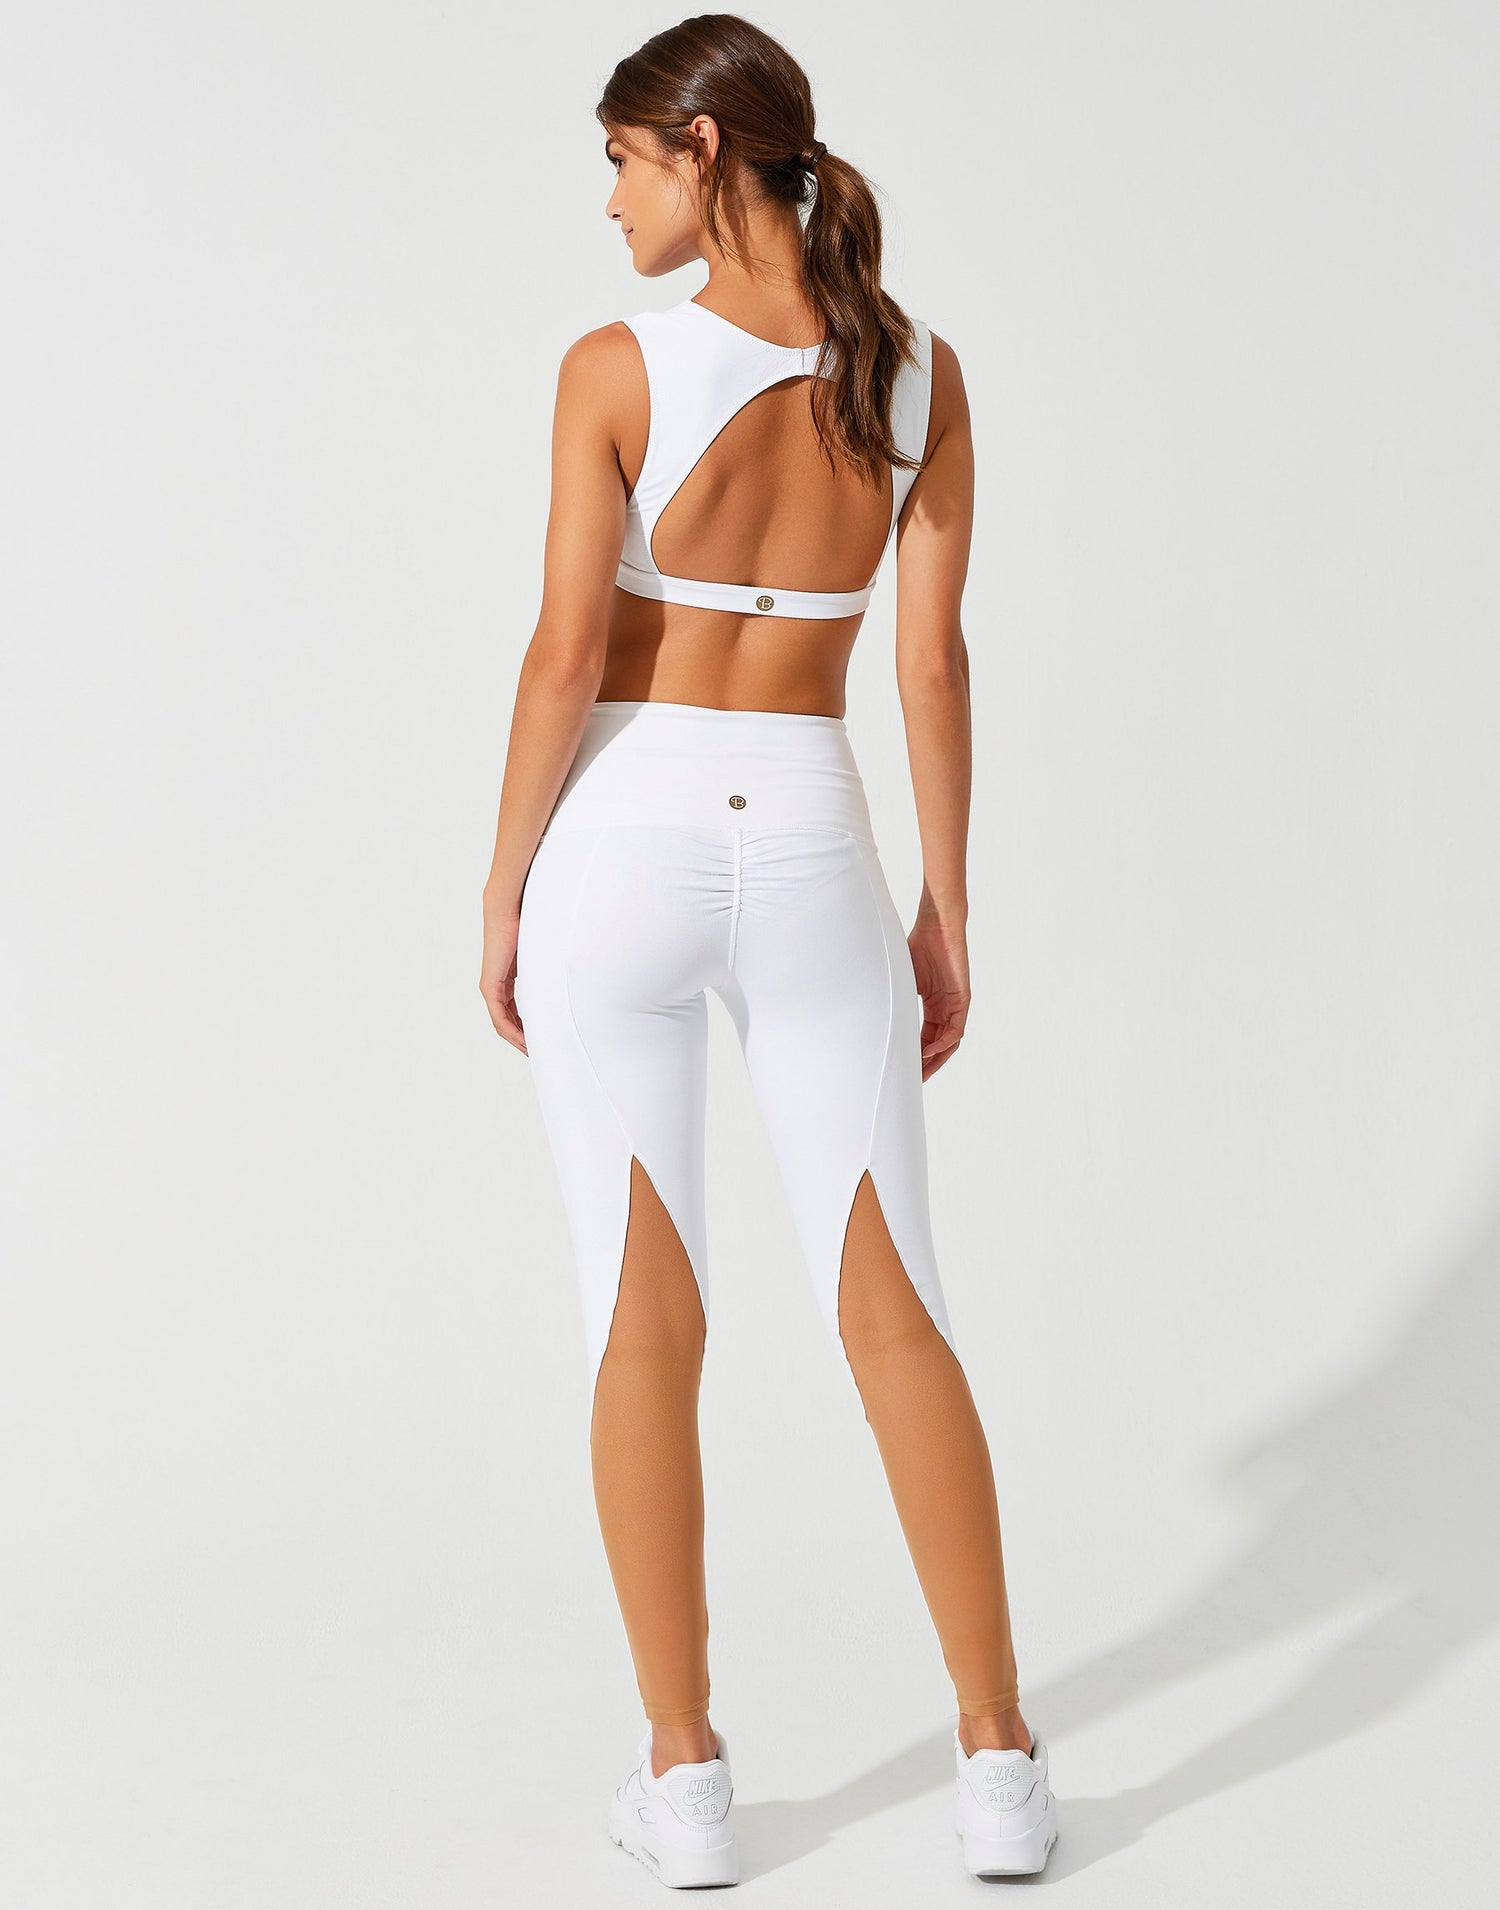 Chloe Crop Top in White with Open Back - back view